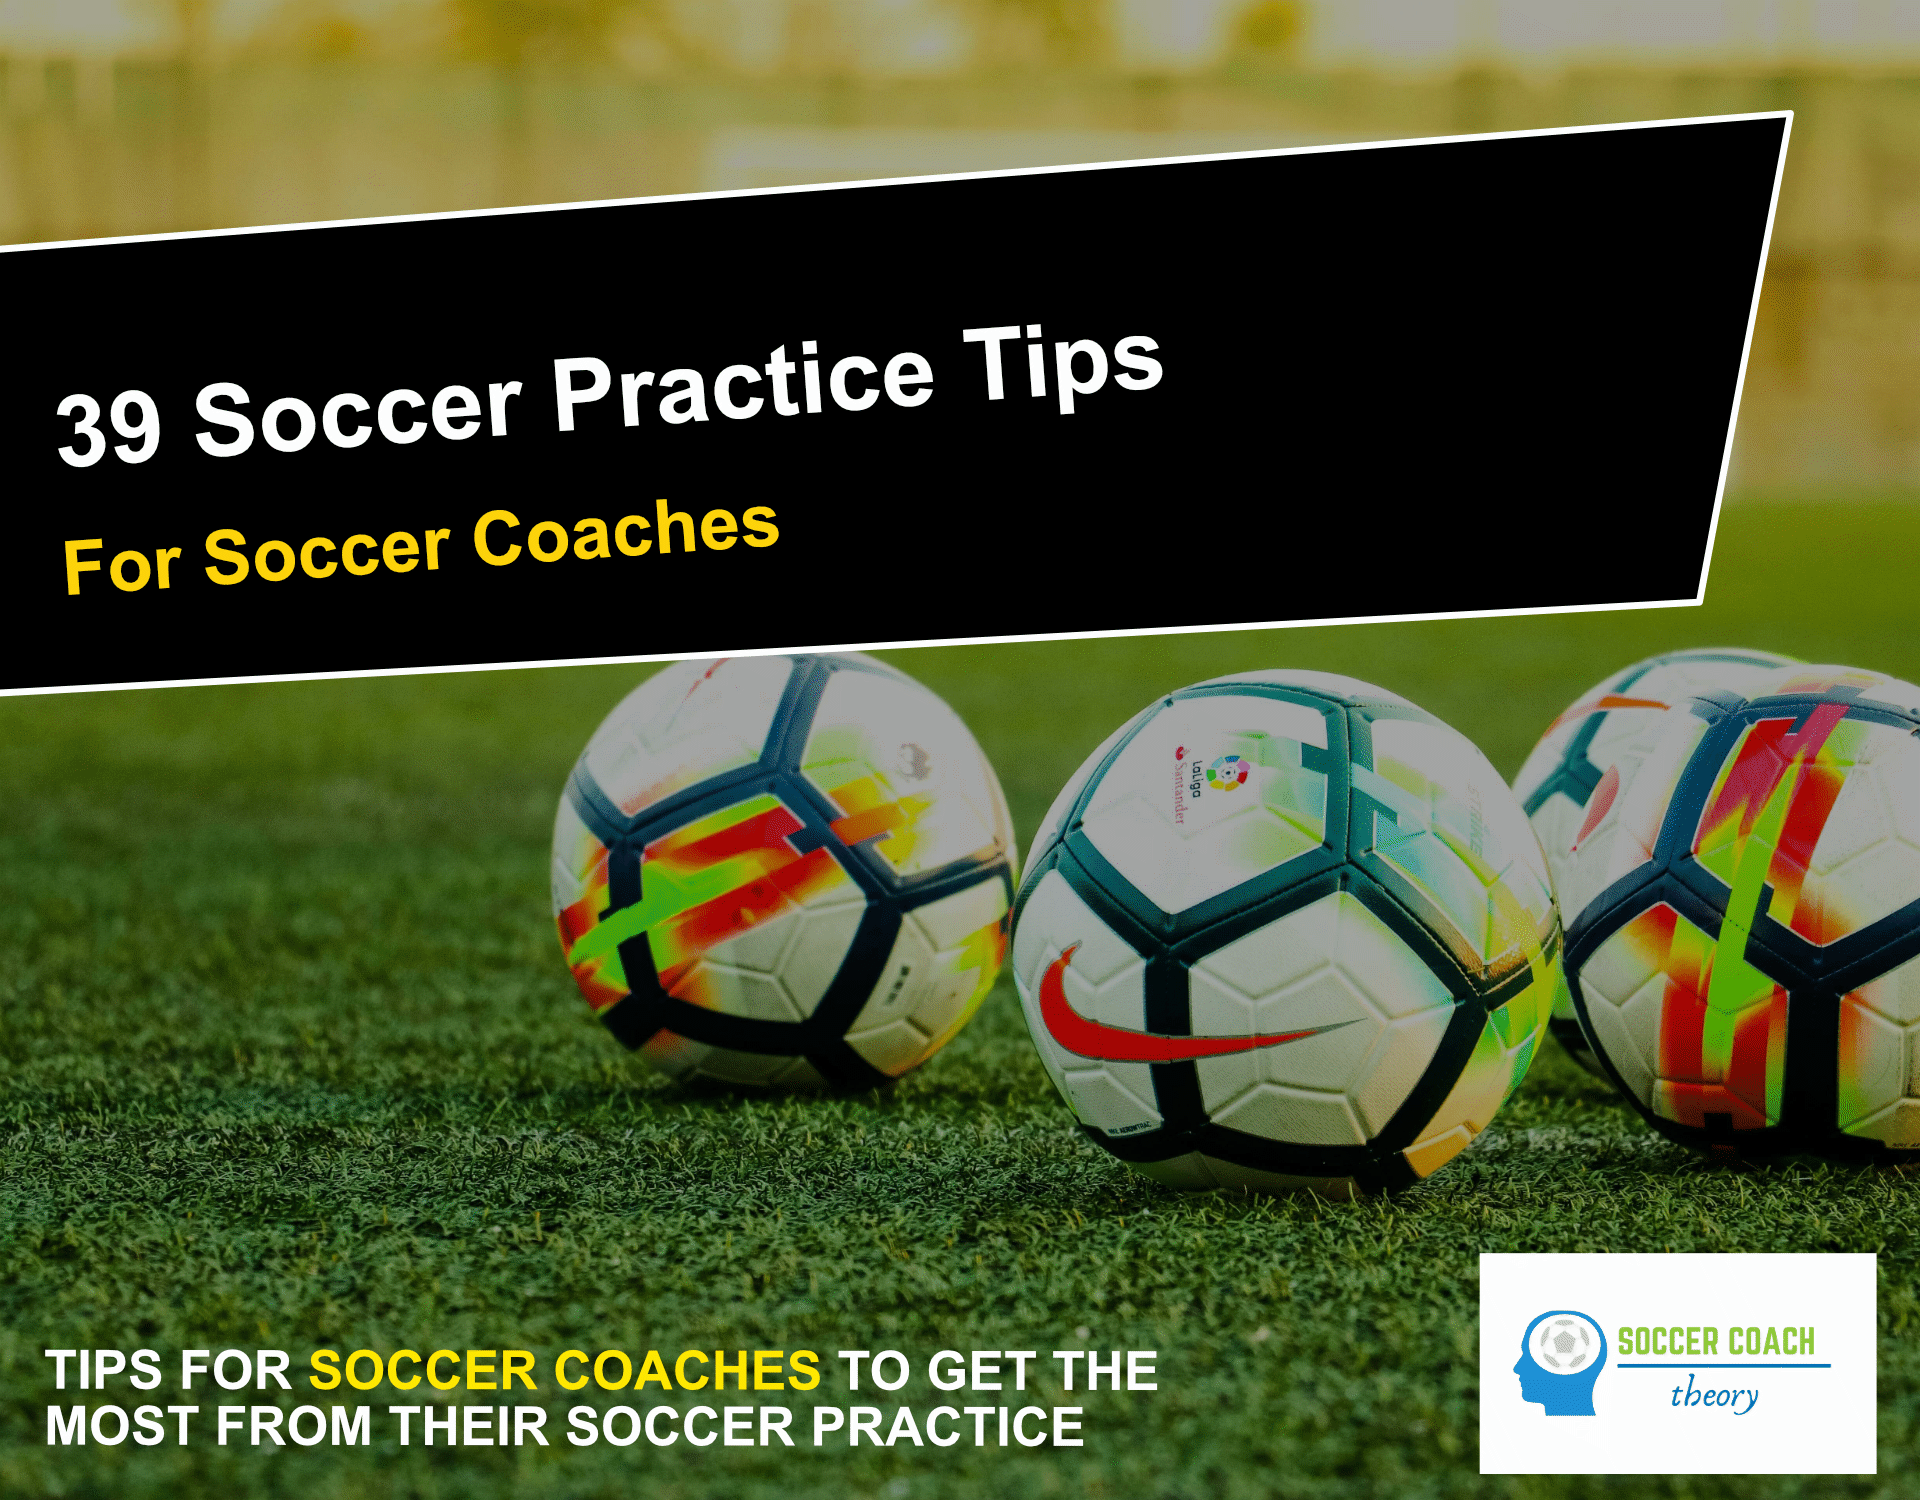 39 Soccer Practice Tips for Soccer Coaches